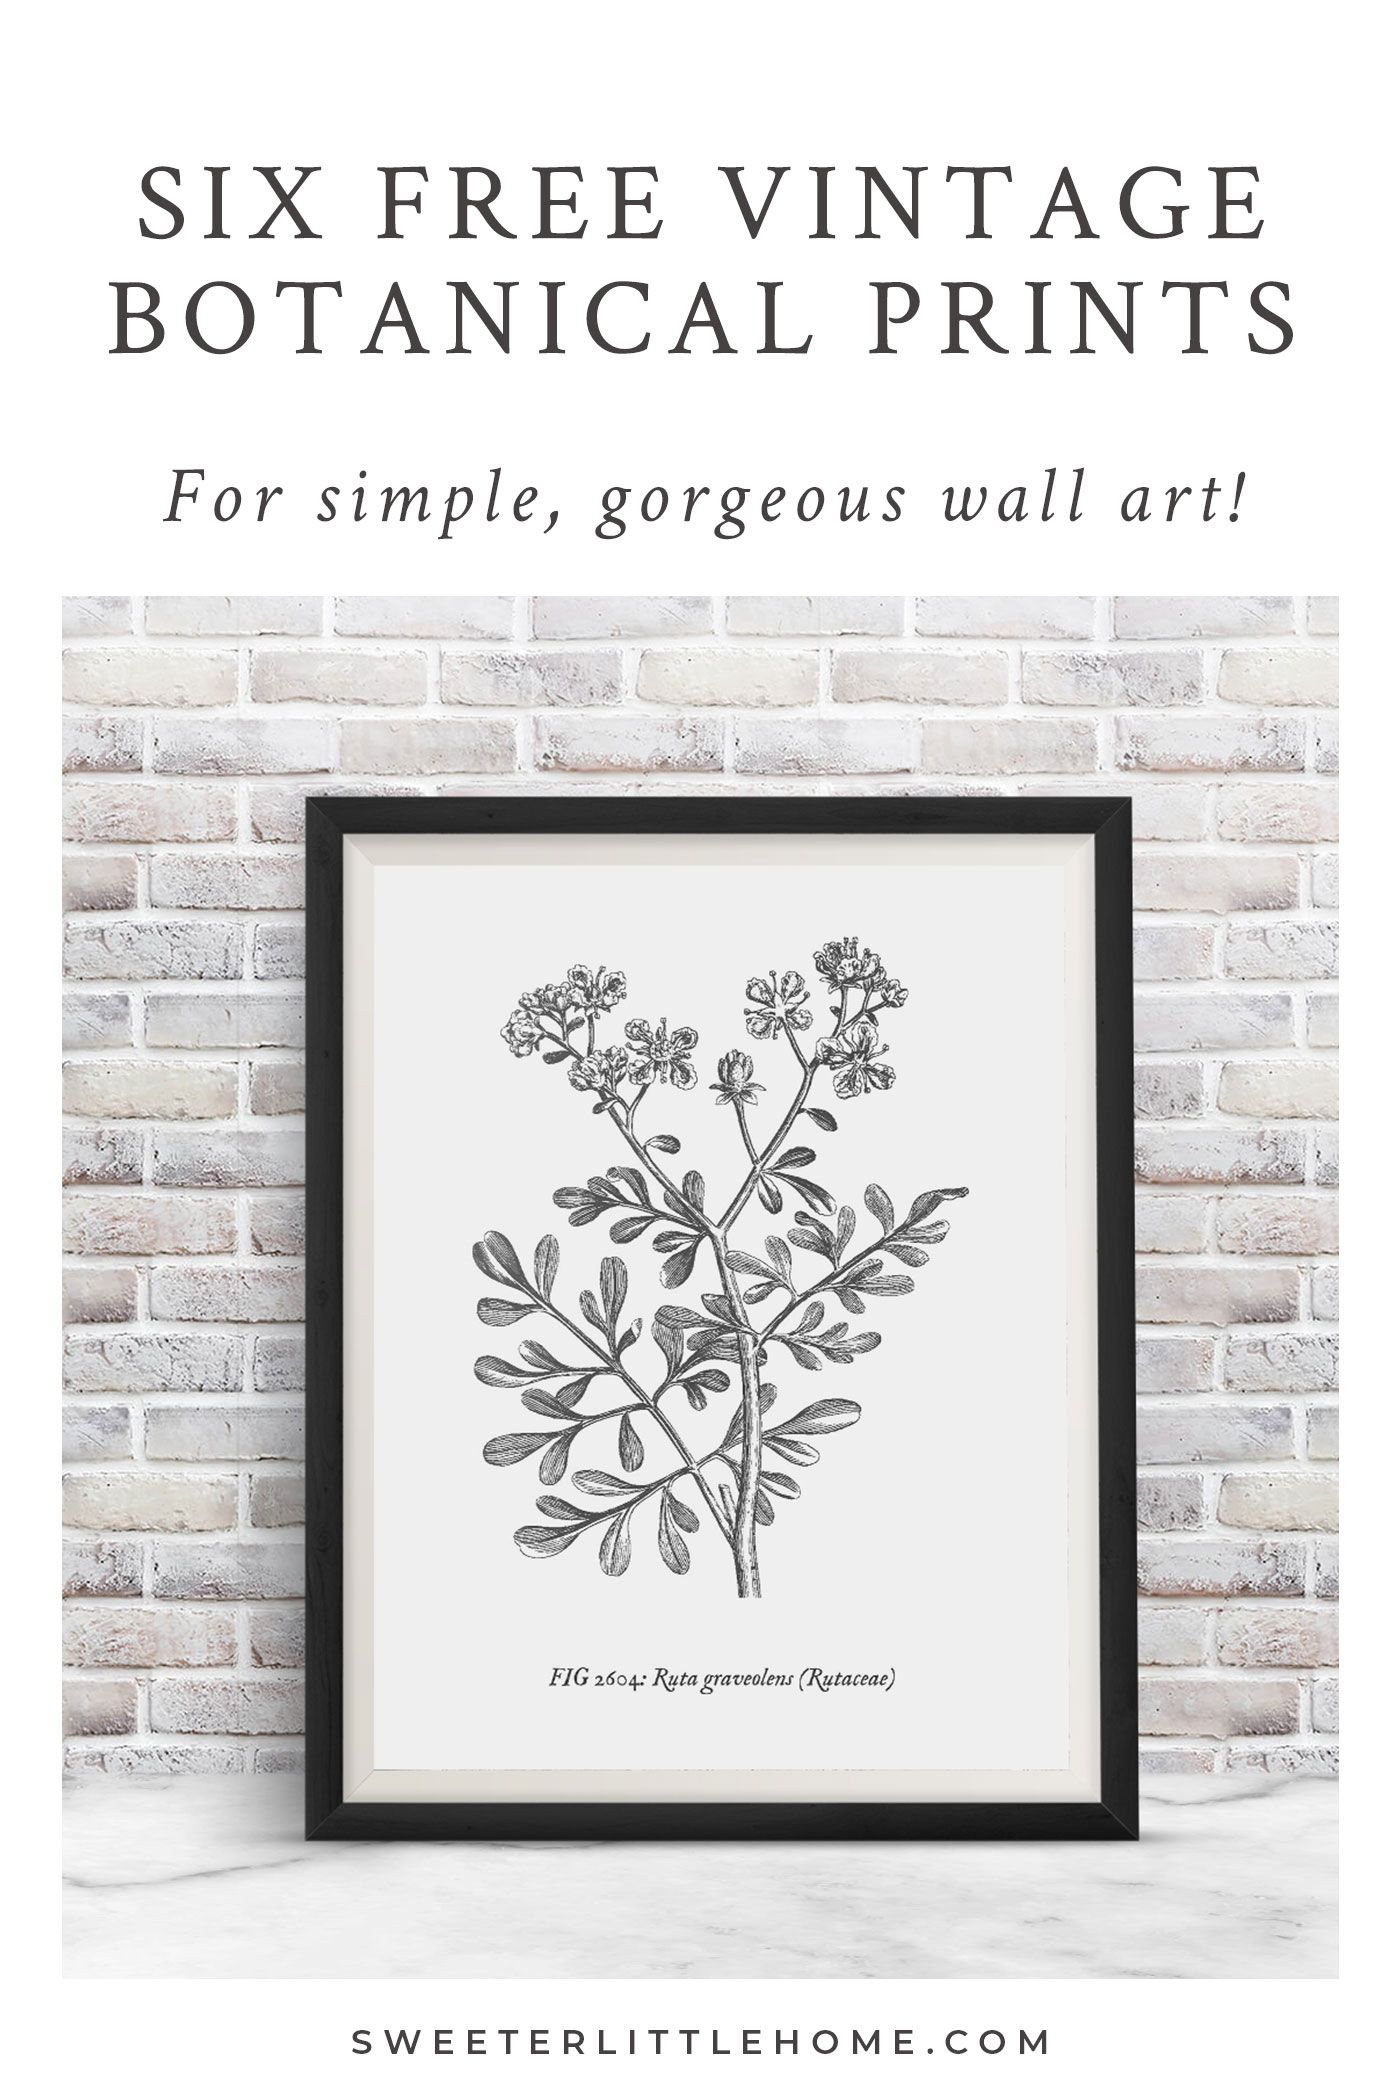 Sweeterlittlehome Com Nbspsweeterlittlehome Resources And Information Floral Wall Art Free Wall Art Diy Wall Art Quotes